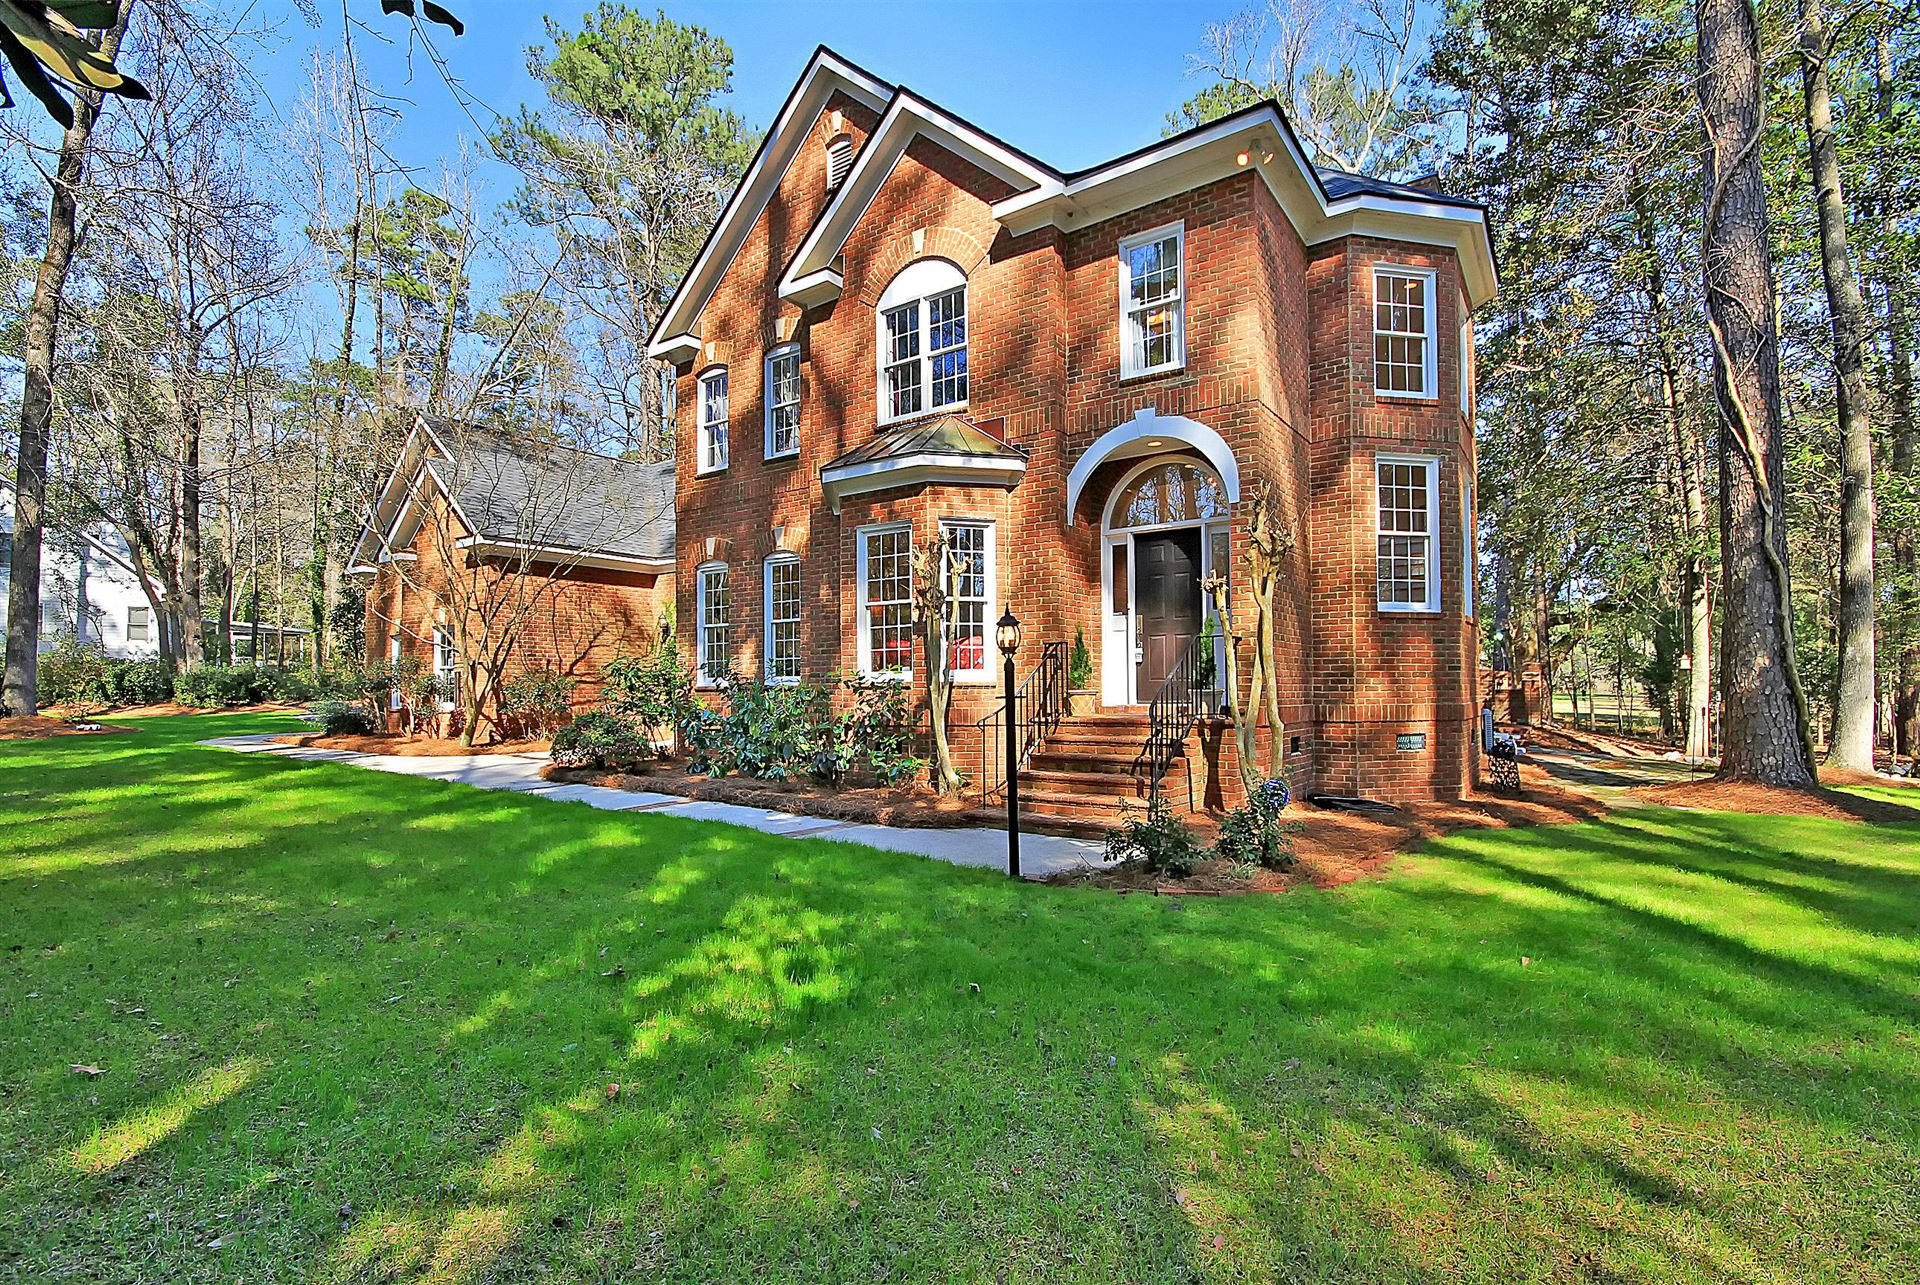 Photo of 418 Country Club Boulevard, Summerville, SC 29483 (MLS # 21005167)